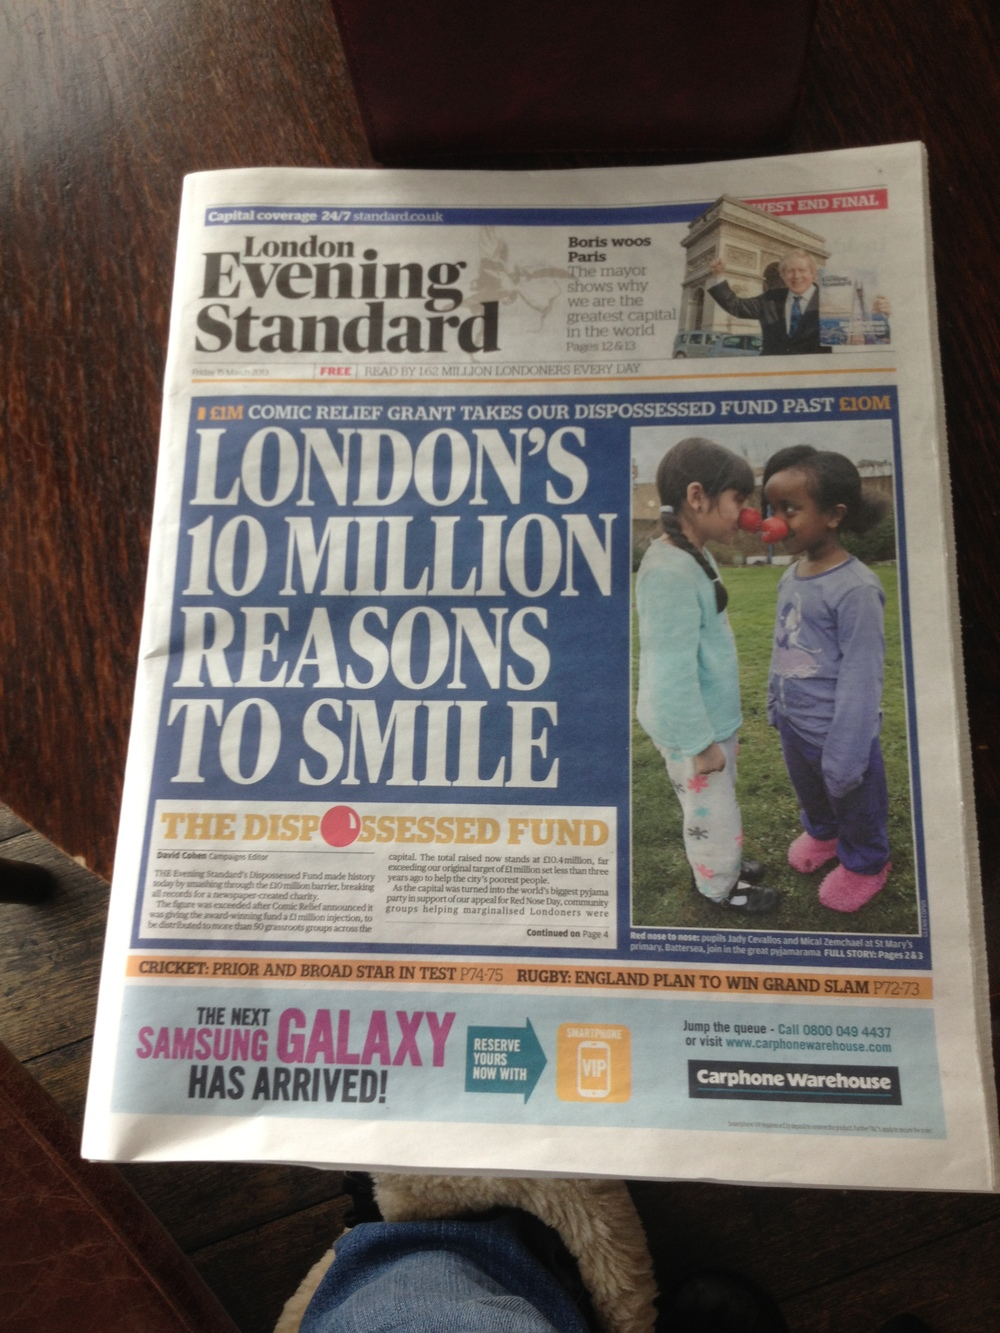 I read the London Evening Standard